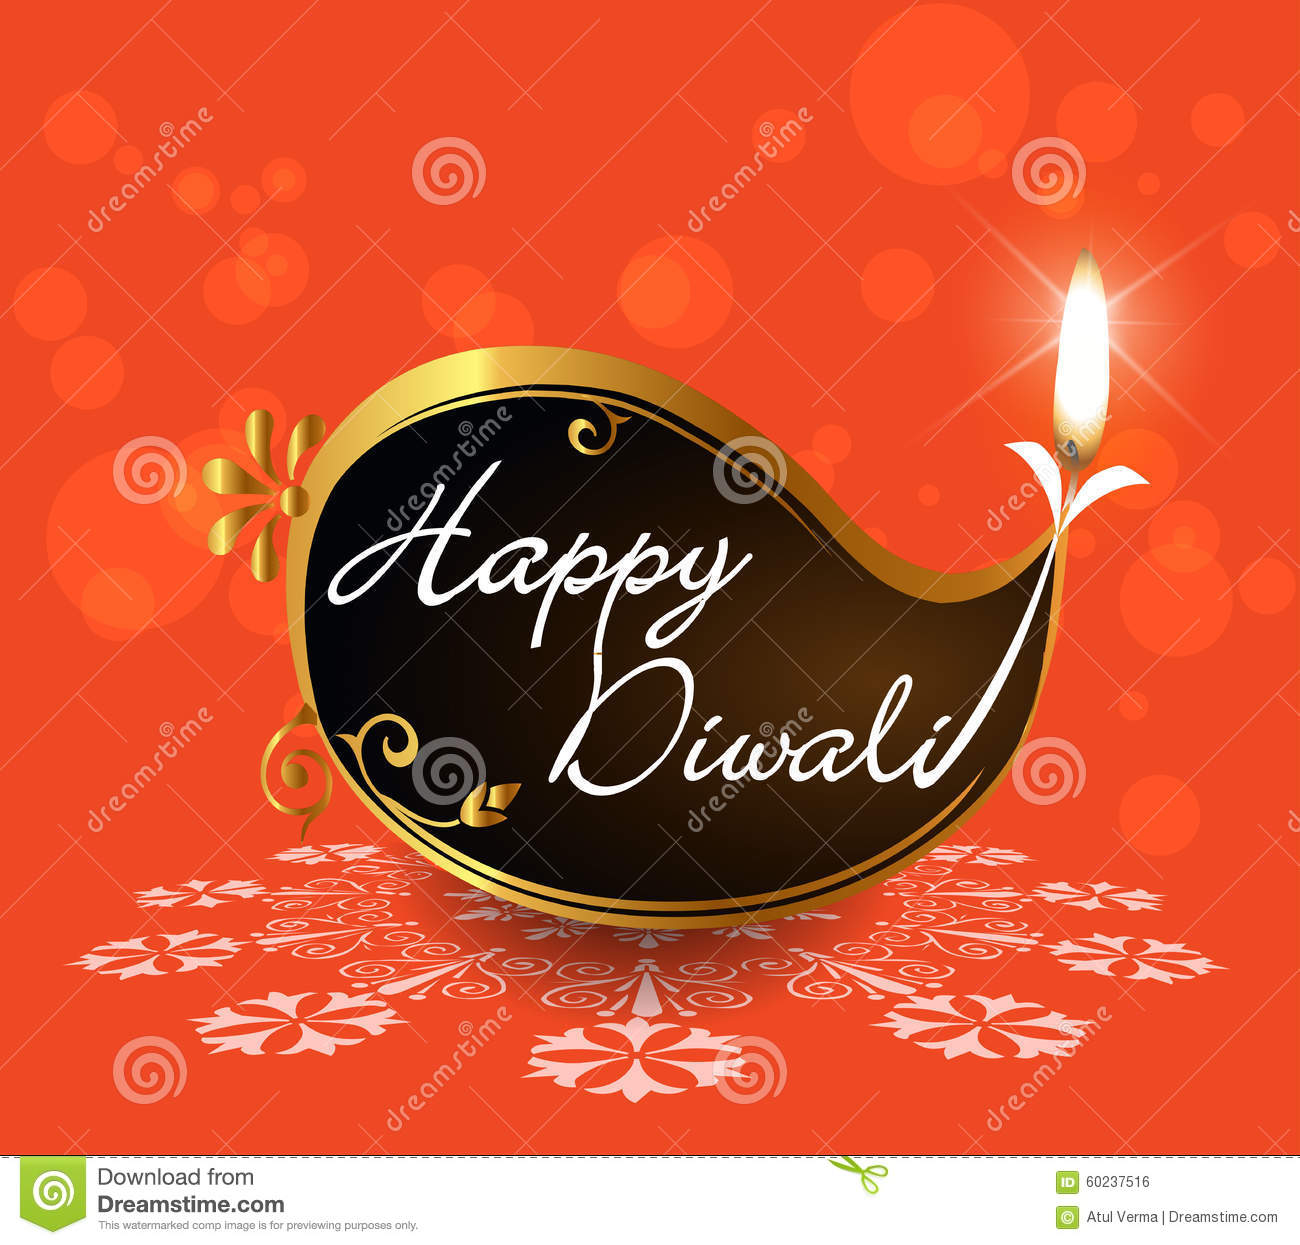 Decorative diwali lamps happy diwali greeting card flat design royalty free vector download decorative diwali lamps happy diwali greeting card flat design stock vector illustration of kristyandbryce Image collections